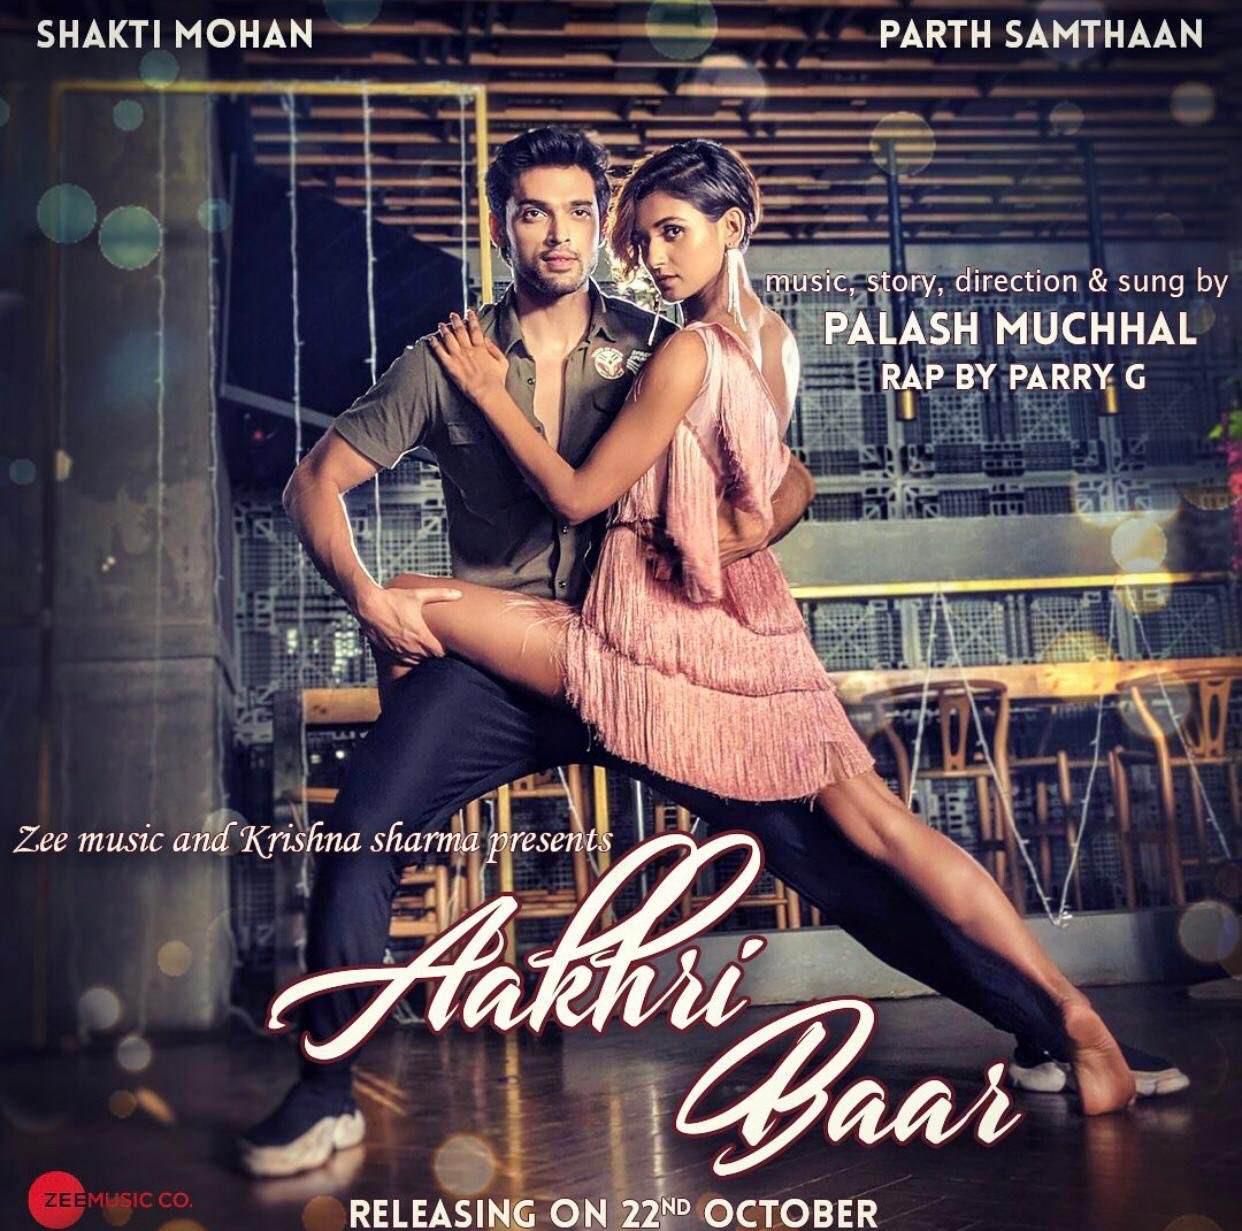 #AakhriBaar, sung by @Palash_Muchhal ft. @MohanShakti & @LaghateParth will be out on 22nd Oct! #StayTuned #ParryG https://t.co/88A8Zz9ekm